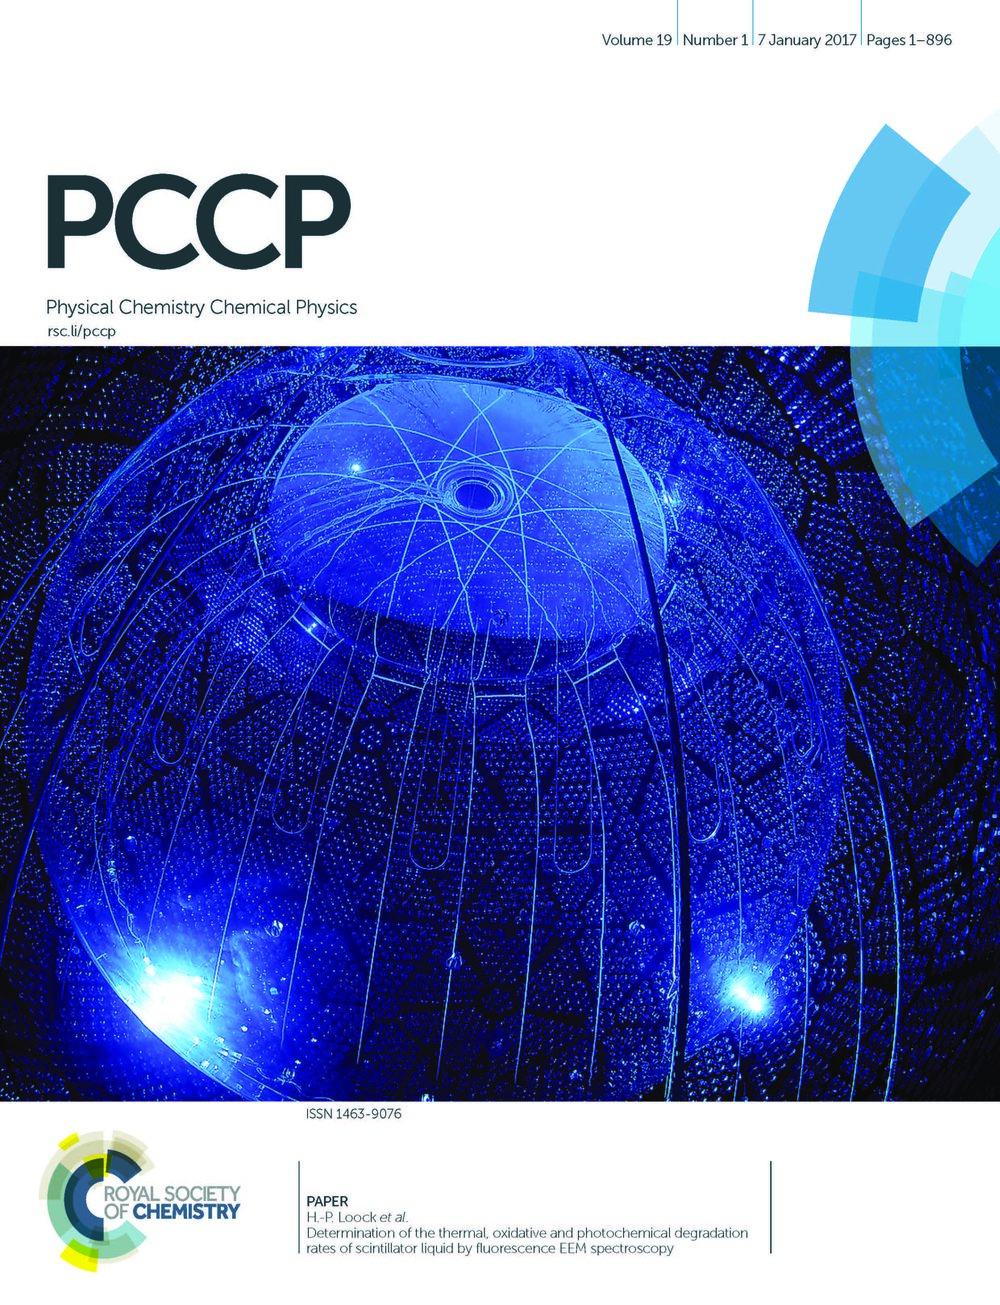 2017 - PCCP - cover - Degradation rates of scintillator liquid - Andrews et al - Copy.jpg